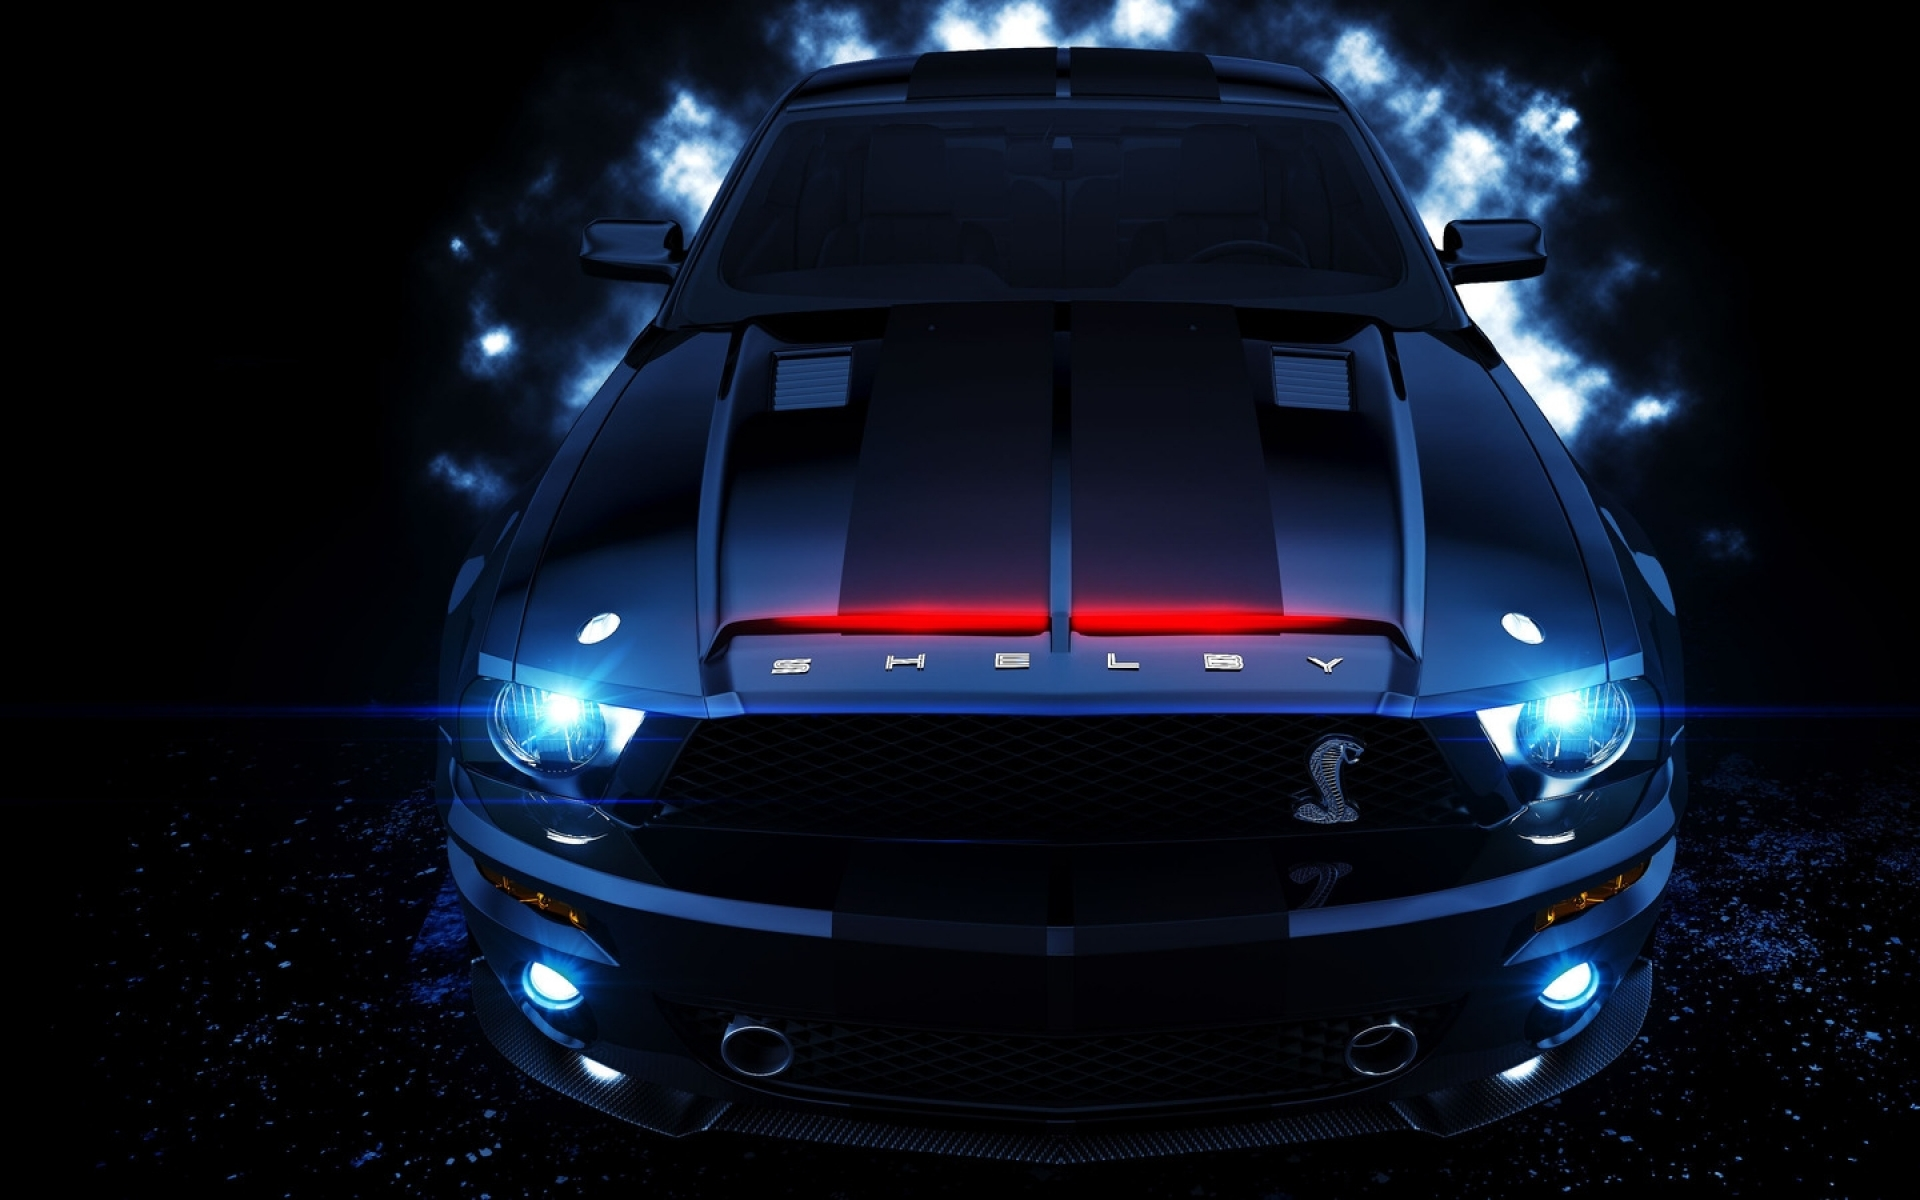 Download Wallpapers Download 1920x1200 cars ford mustang knight rider 1920x1200